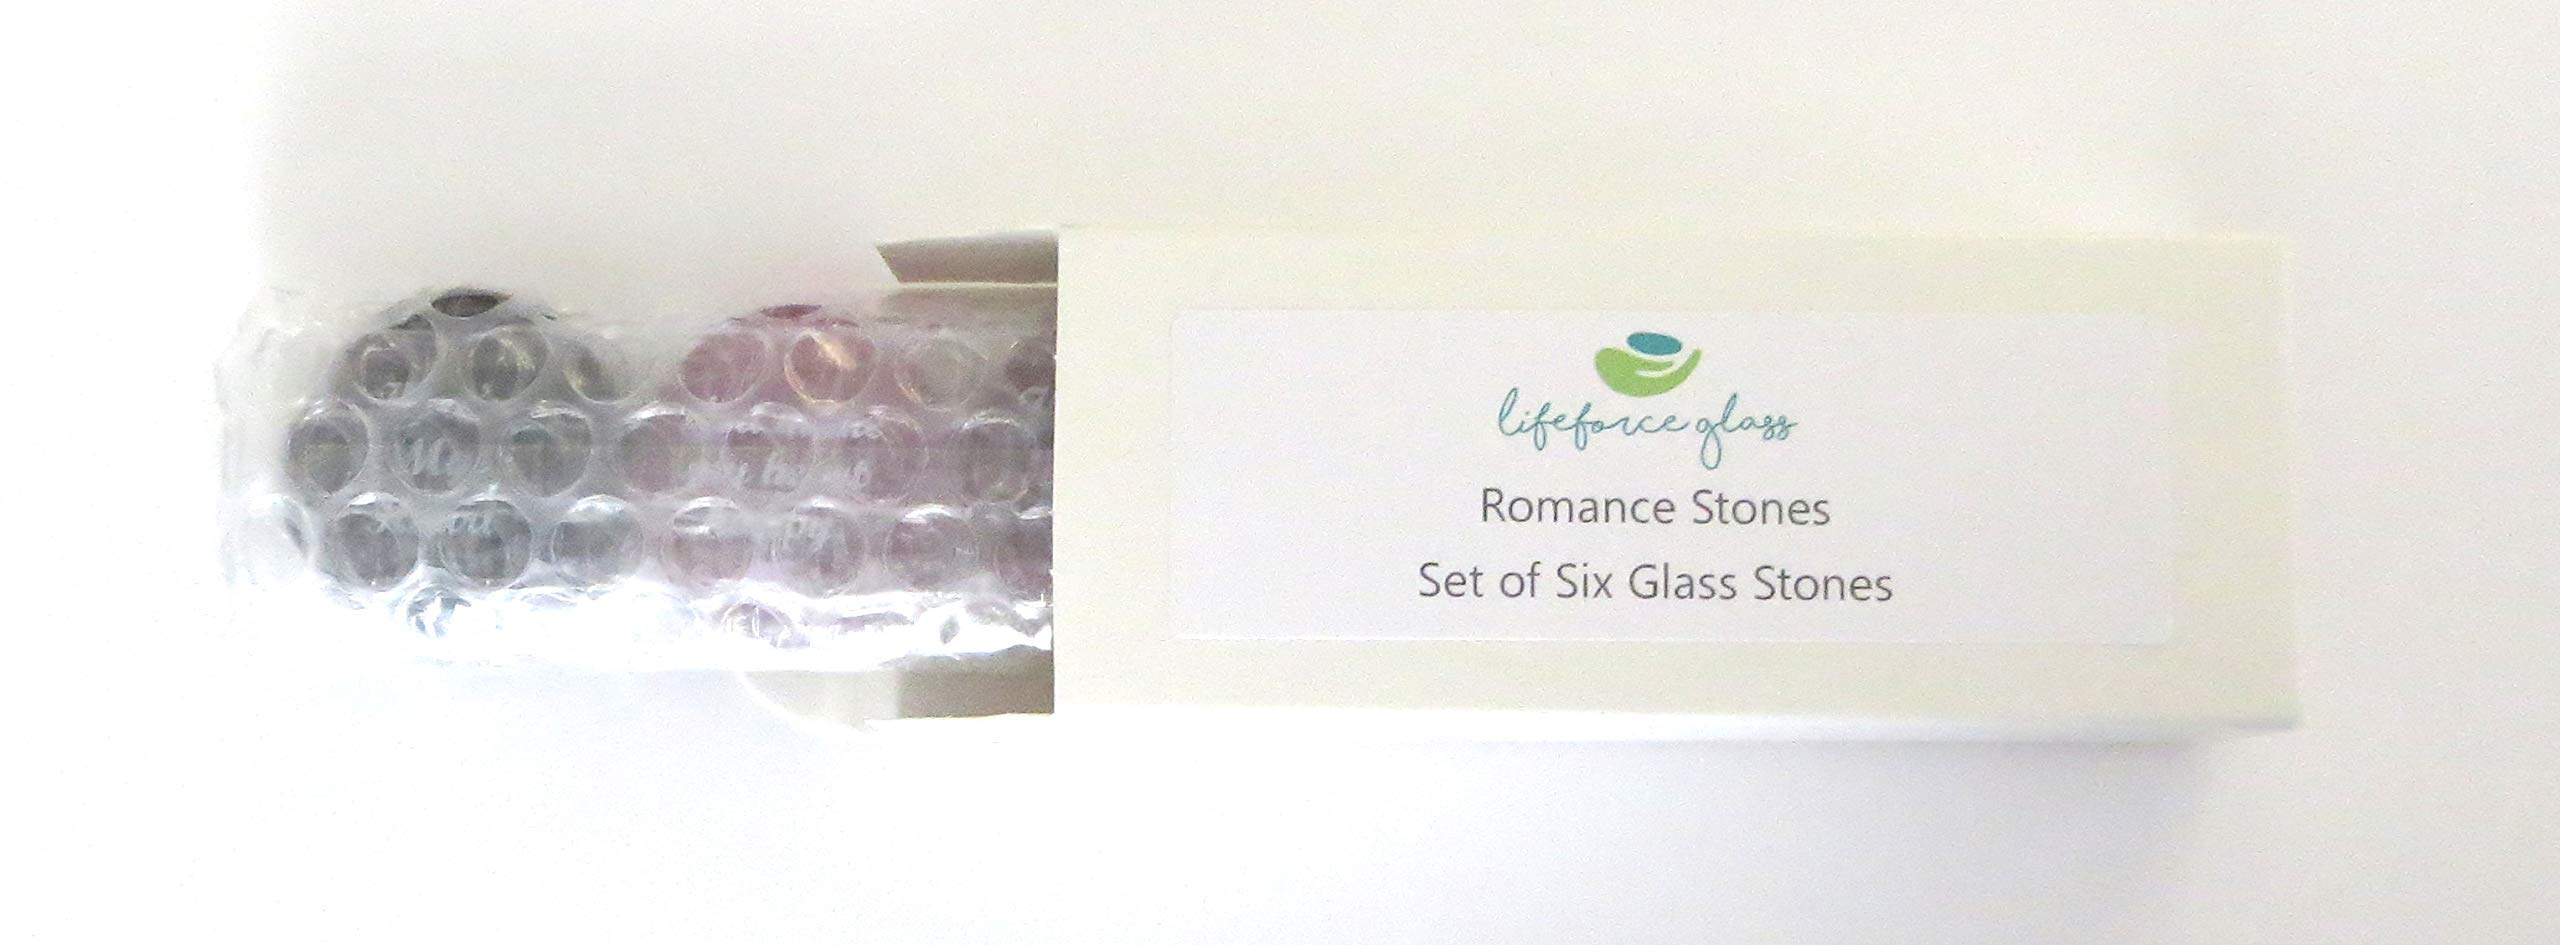 Romance Glass Stones, Messages of Love and Affection For Your Beloved. Set of Six, by Lifeforce Glass. by Lifeforce Glass (Image #3)